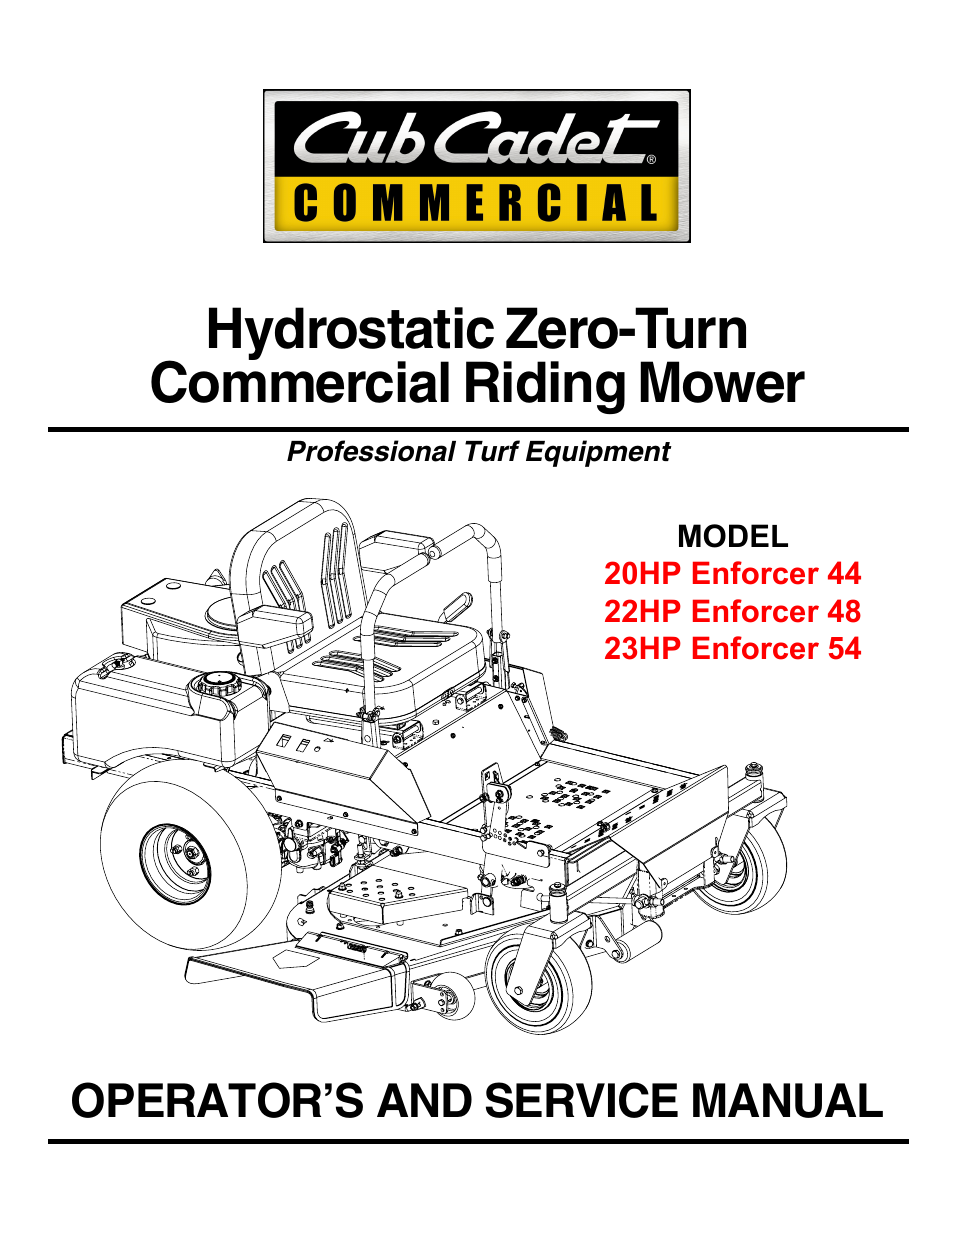 Cub Cadet 22HP ENFORCER 48 EN User Manual   32 pages